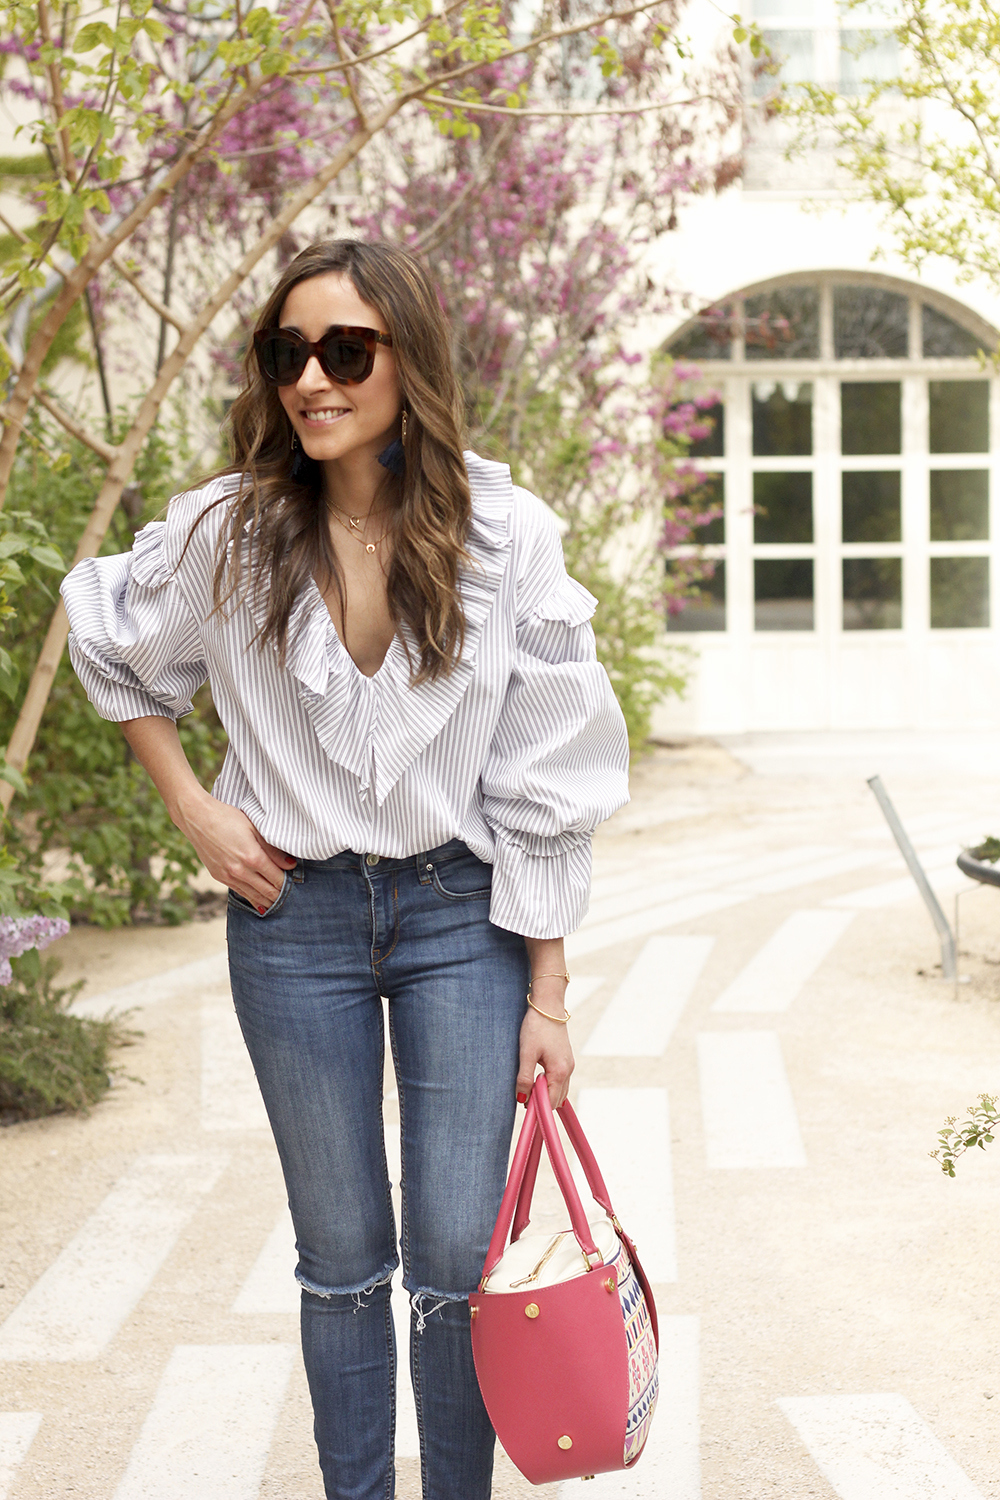 Ruffled striped shirt jeans céline sunnies sandals pamapamar bag accessories spring outfit style fashion08